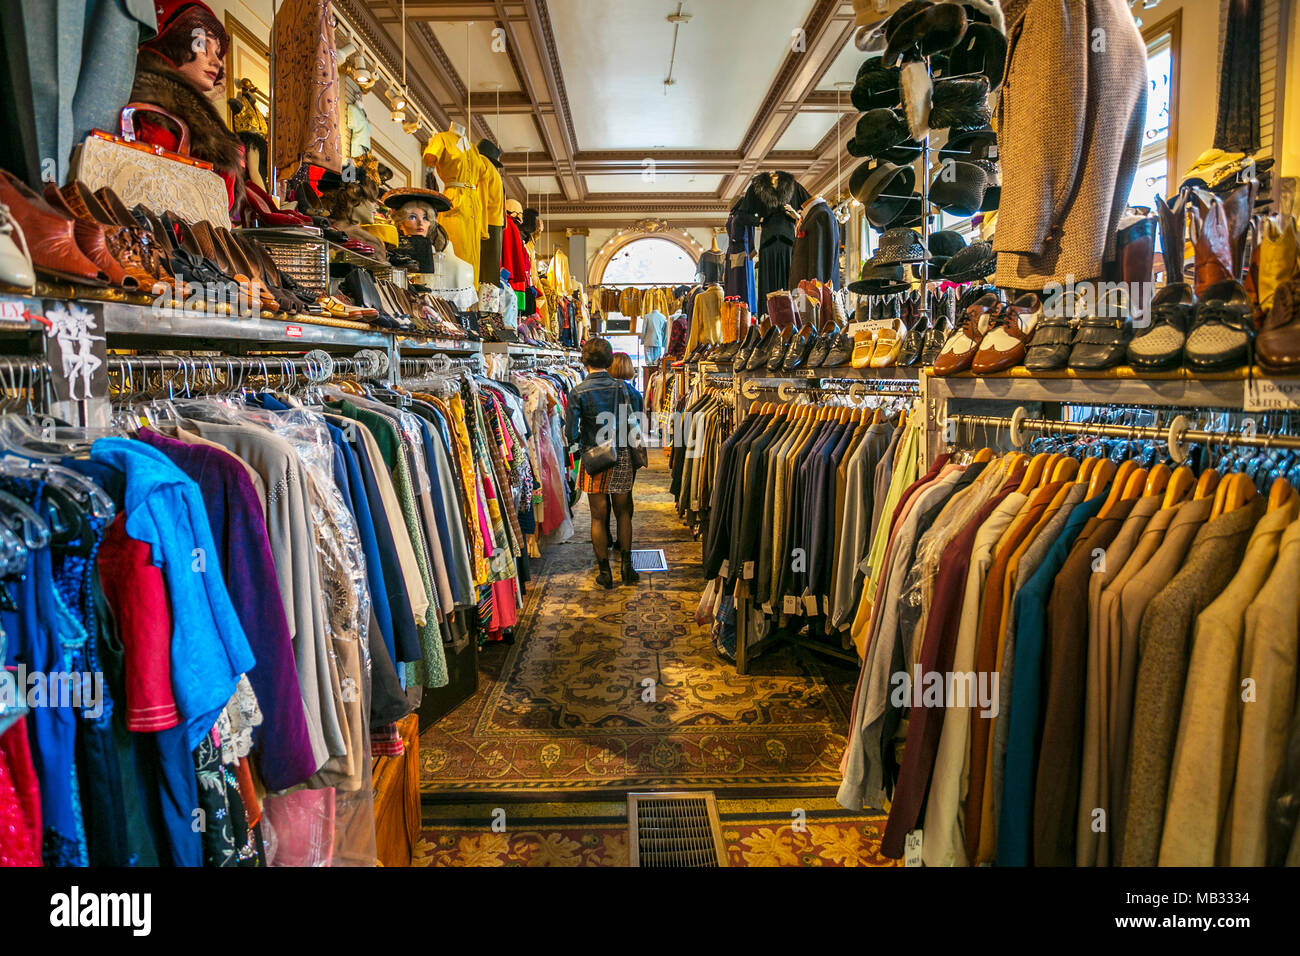 Decades of fashion shop. Haight-Ashbury district. The neighborhood is known for being the origin of hippie counter culture. San Francisco. California, - Stock Image